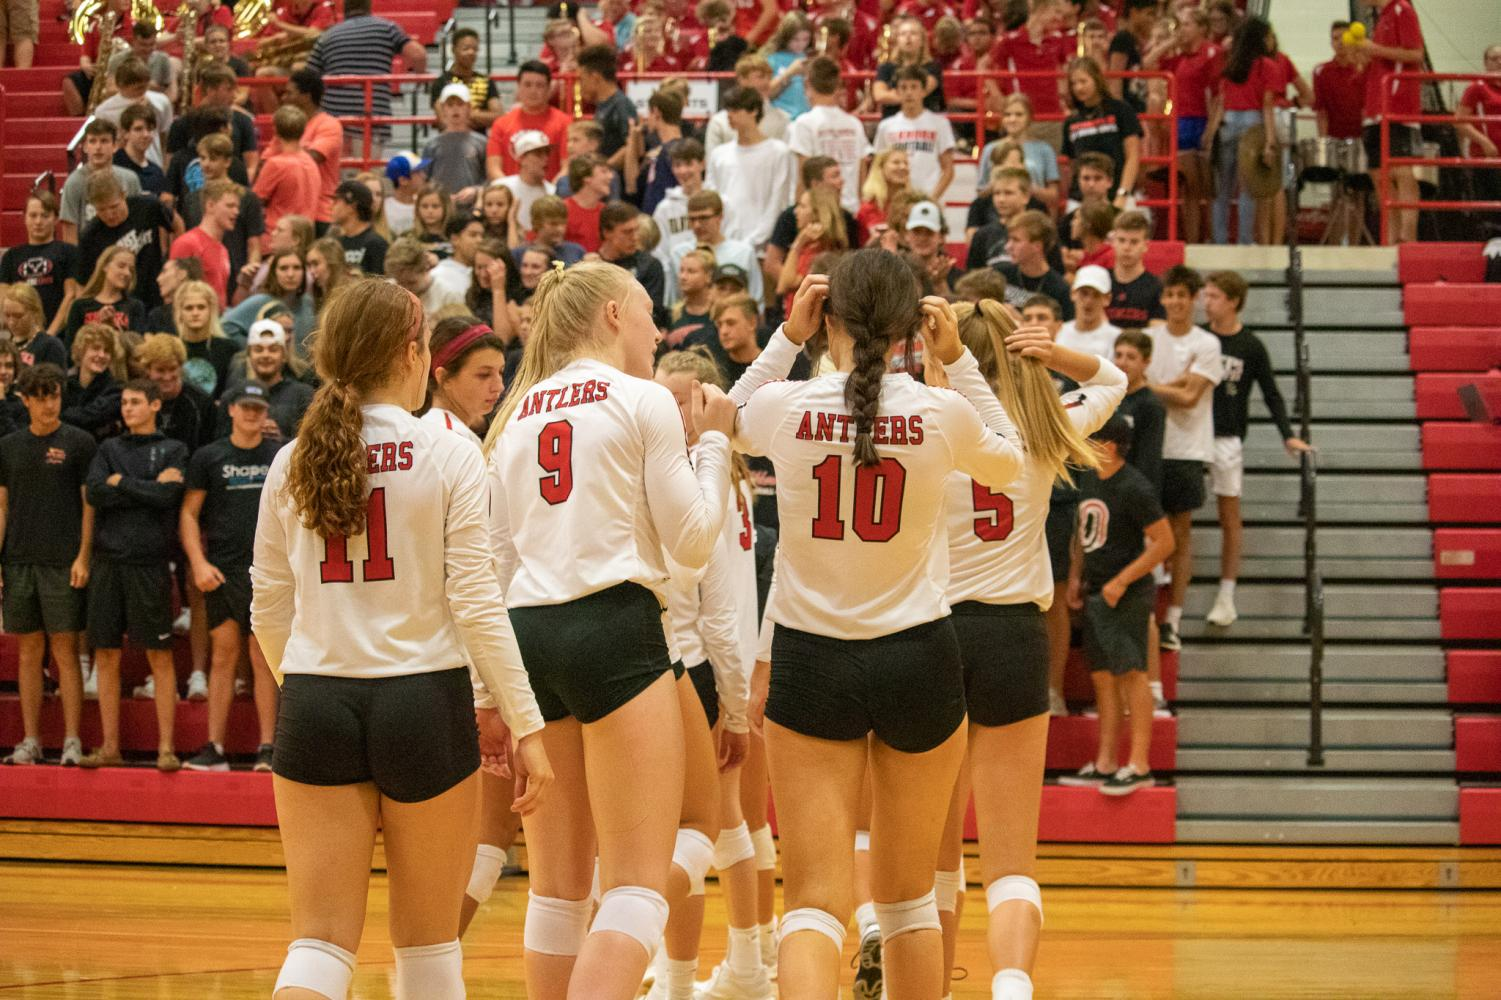 Antler+volleyball+players+walking+out+to+get+ready+for+the+National+Anthem.